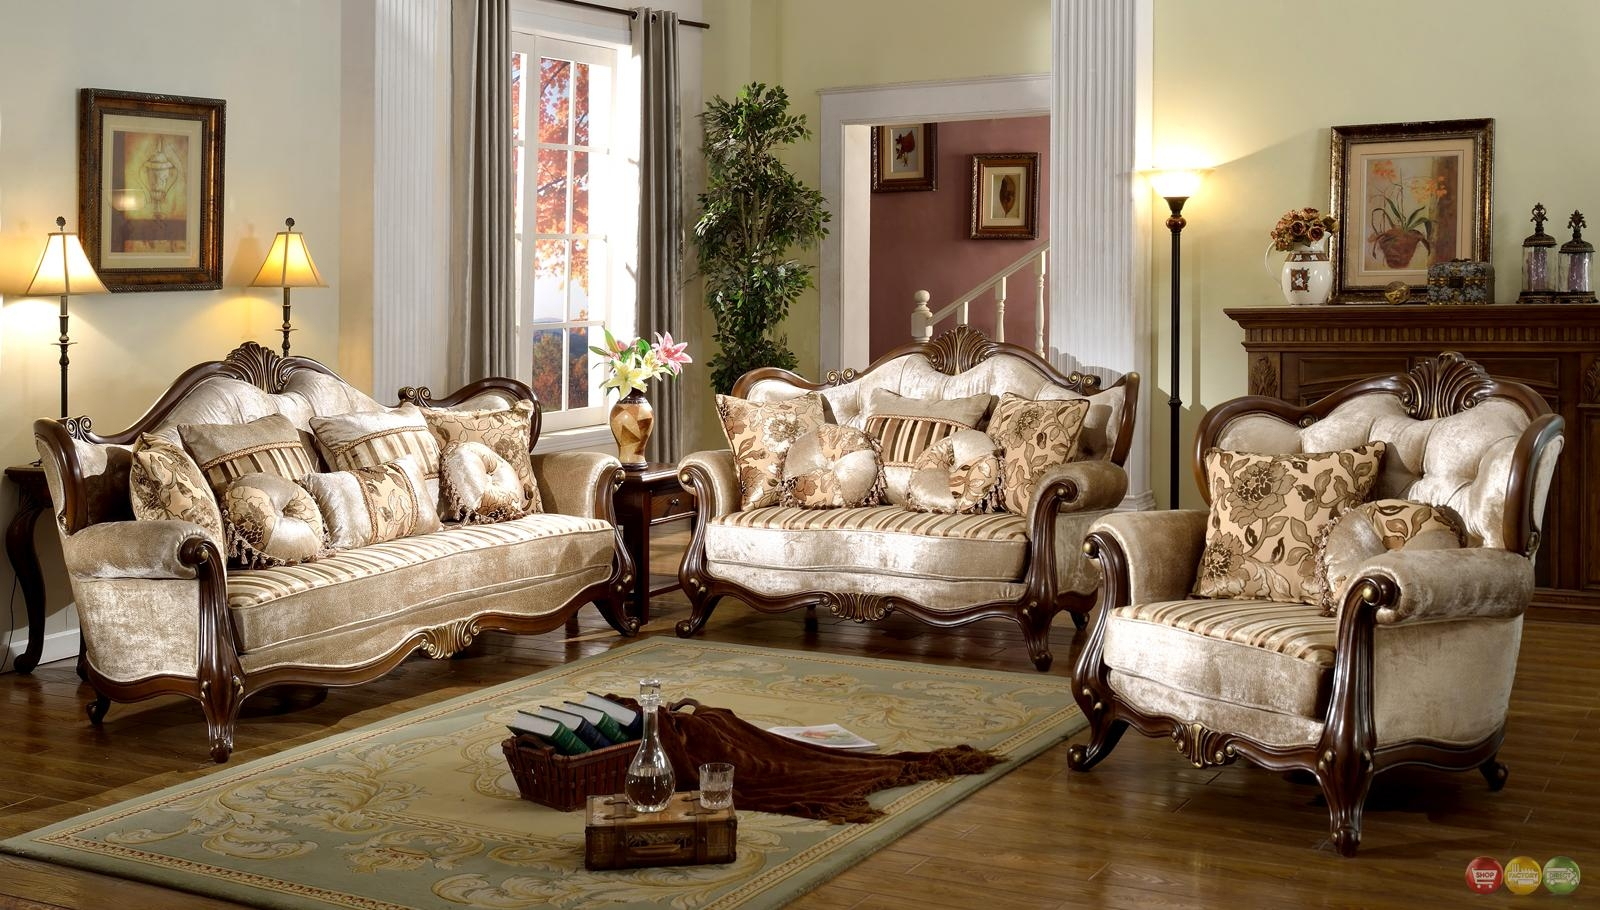 French Provincial Formal Antique Style Living Room Furniture Set With Vintage Sofa Styles (View 18 of 20)